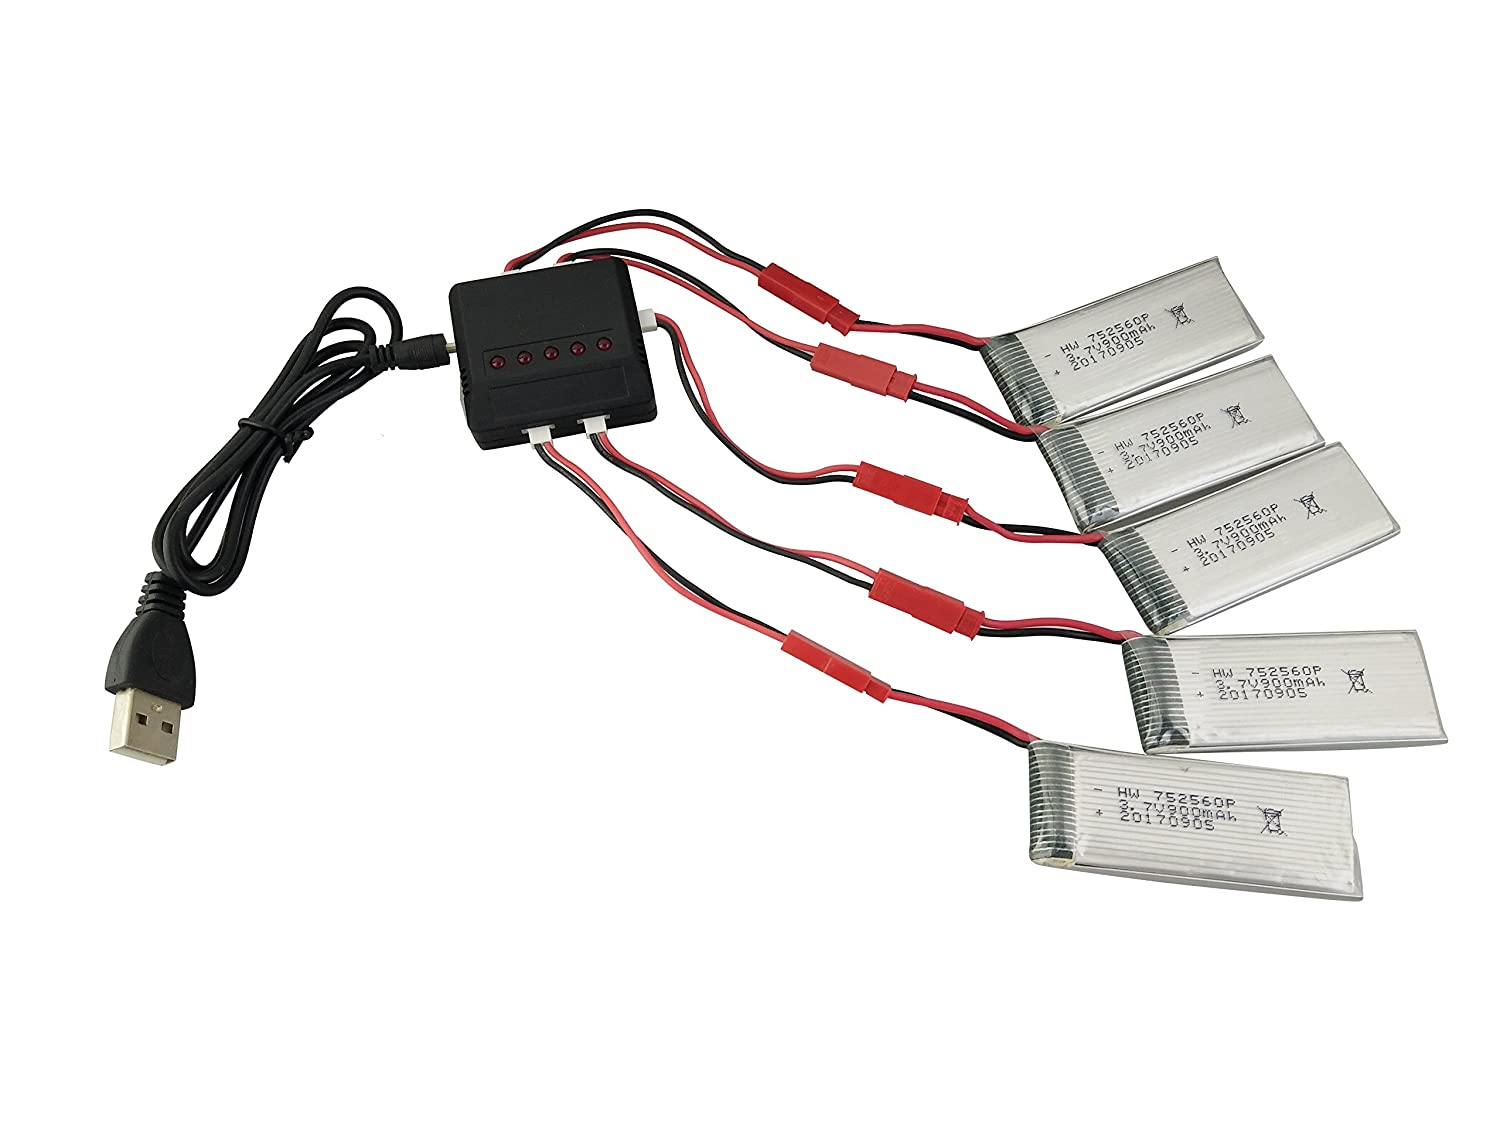 Fytoo 5PCS 3.7V 900mah Lithium Batteries /& 5 in 1 Charger /& Charge Cable for 8807 8807W Folding Four-axis Aircraft Remote Control Quadcopter Drone Batteries Spare Parts